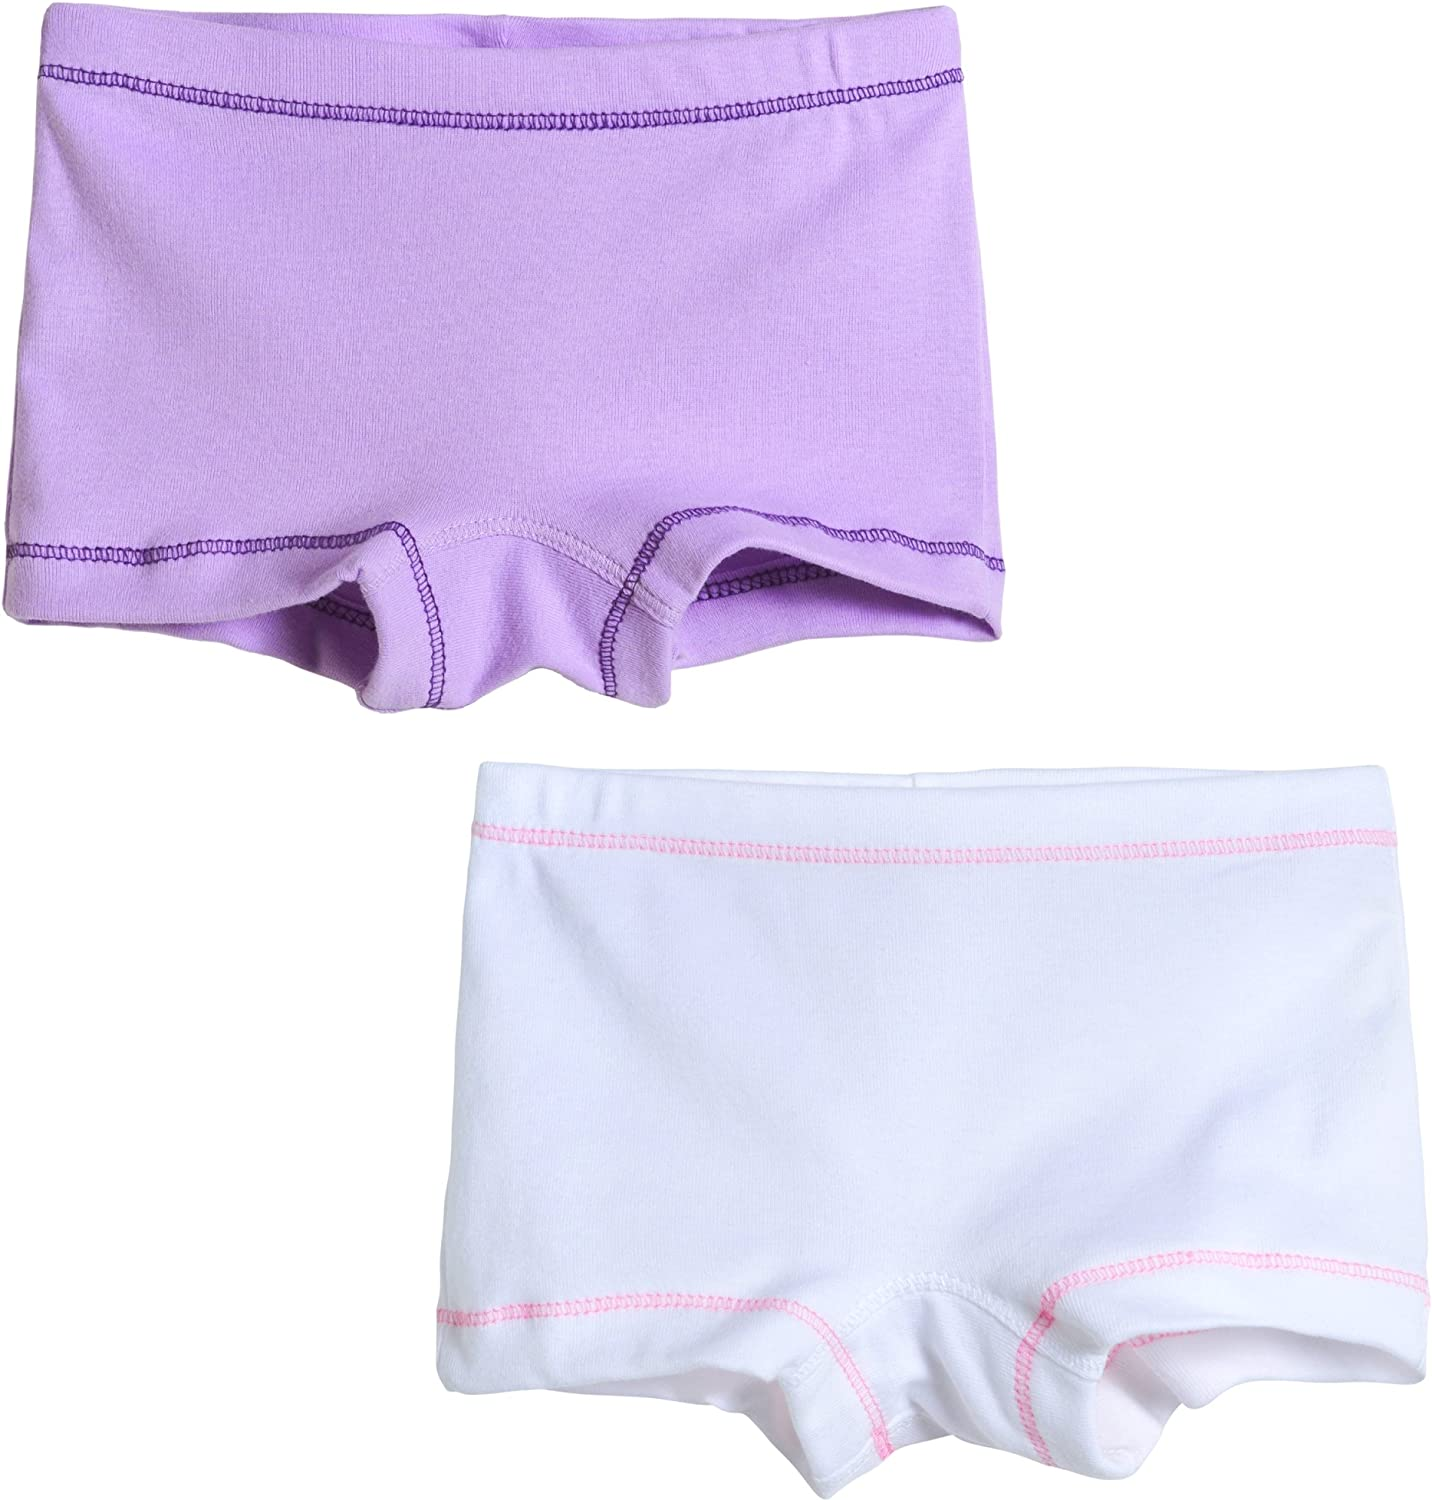 City Threads Girls 2-Pack Boyshorts Underwear Bloomers for Play and Under Dresses Made in USA